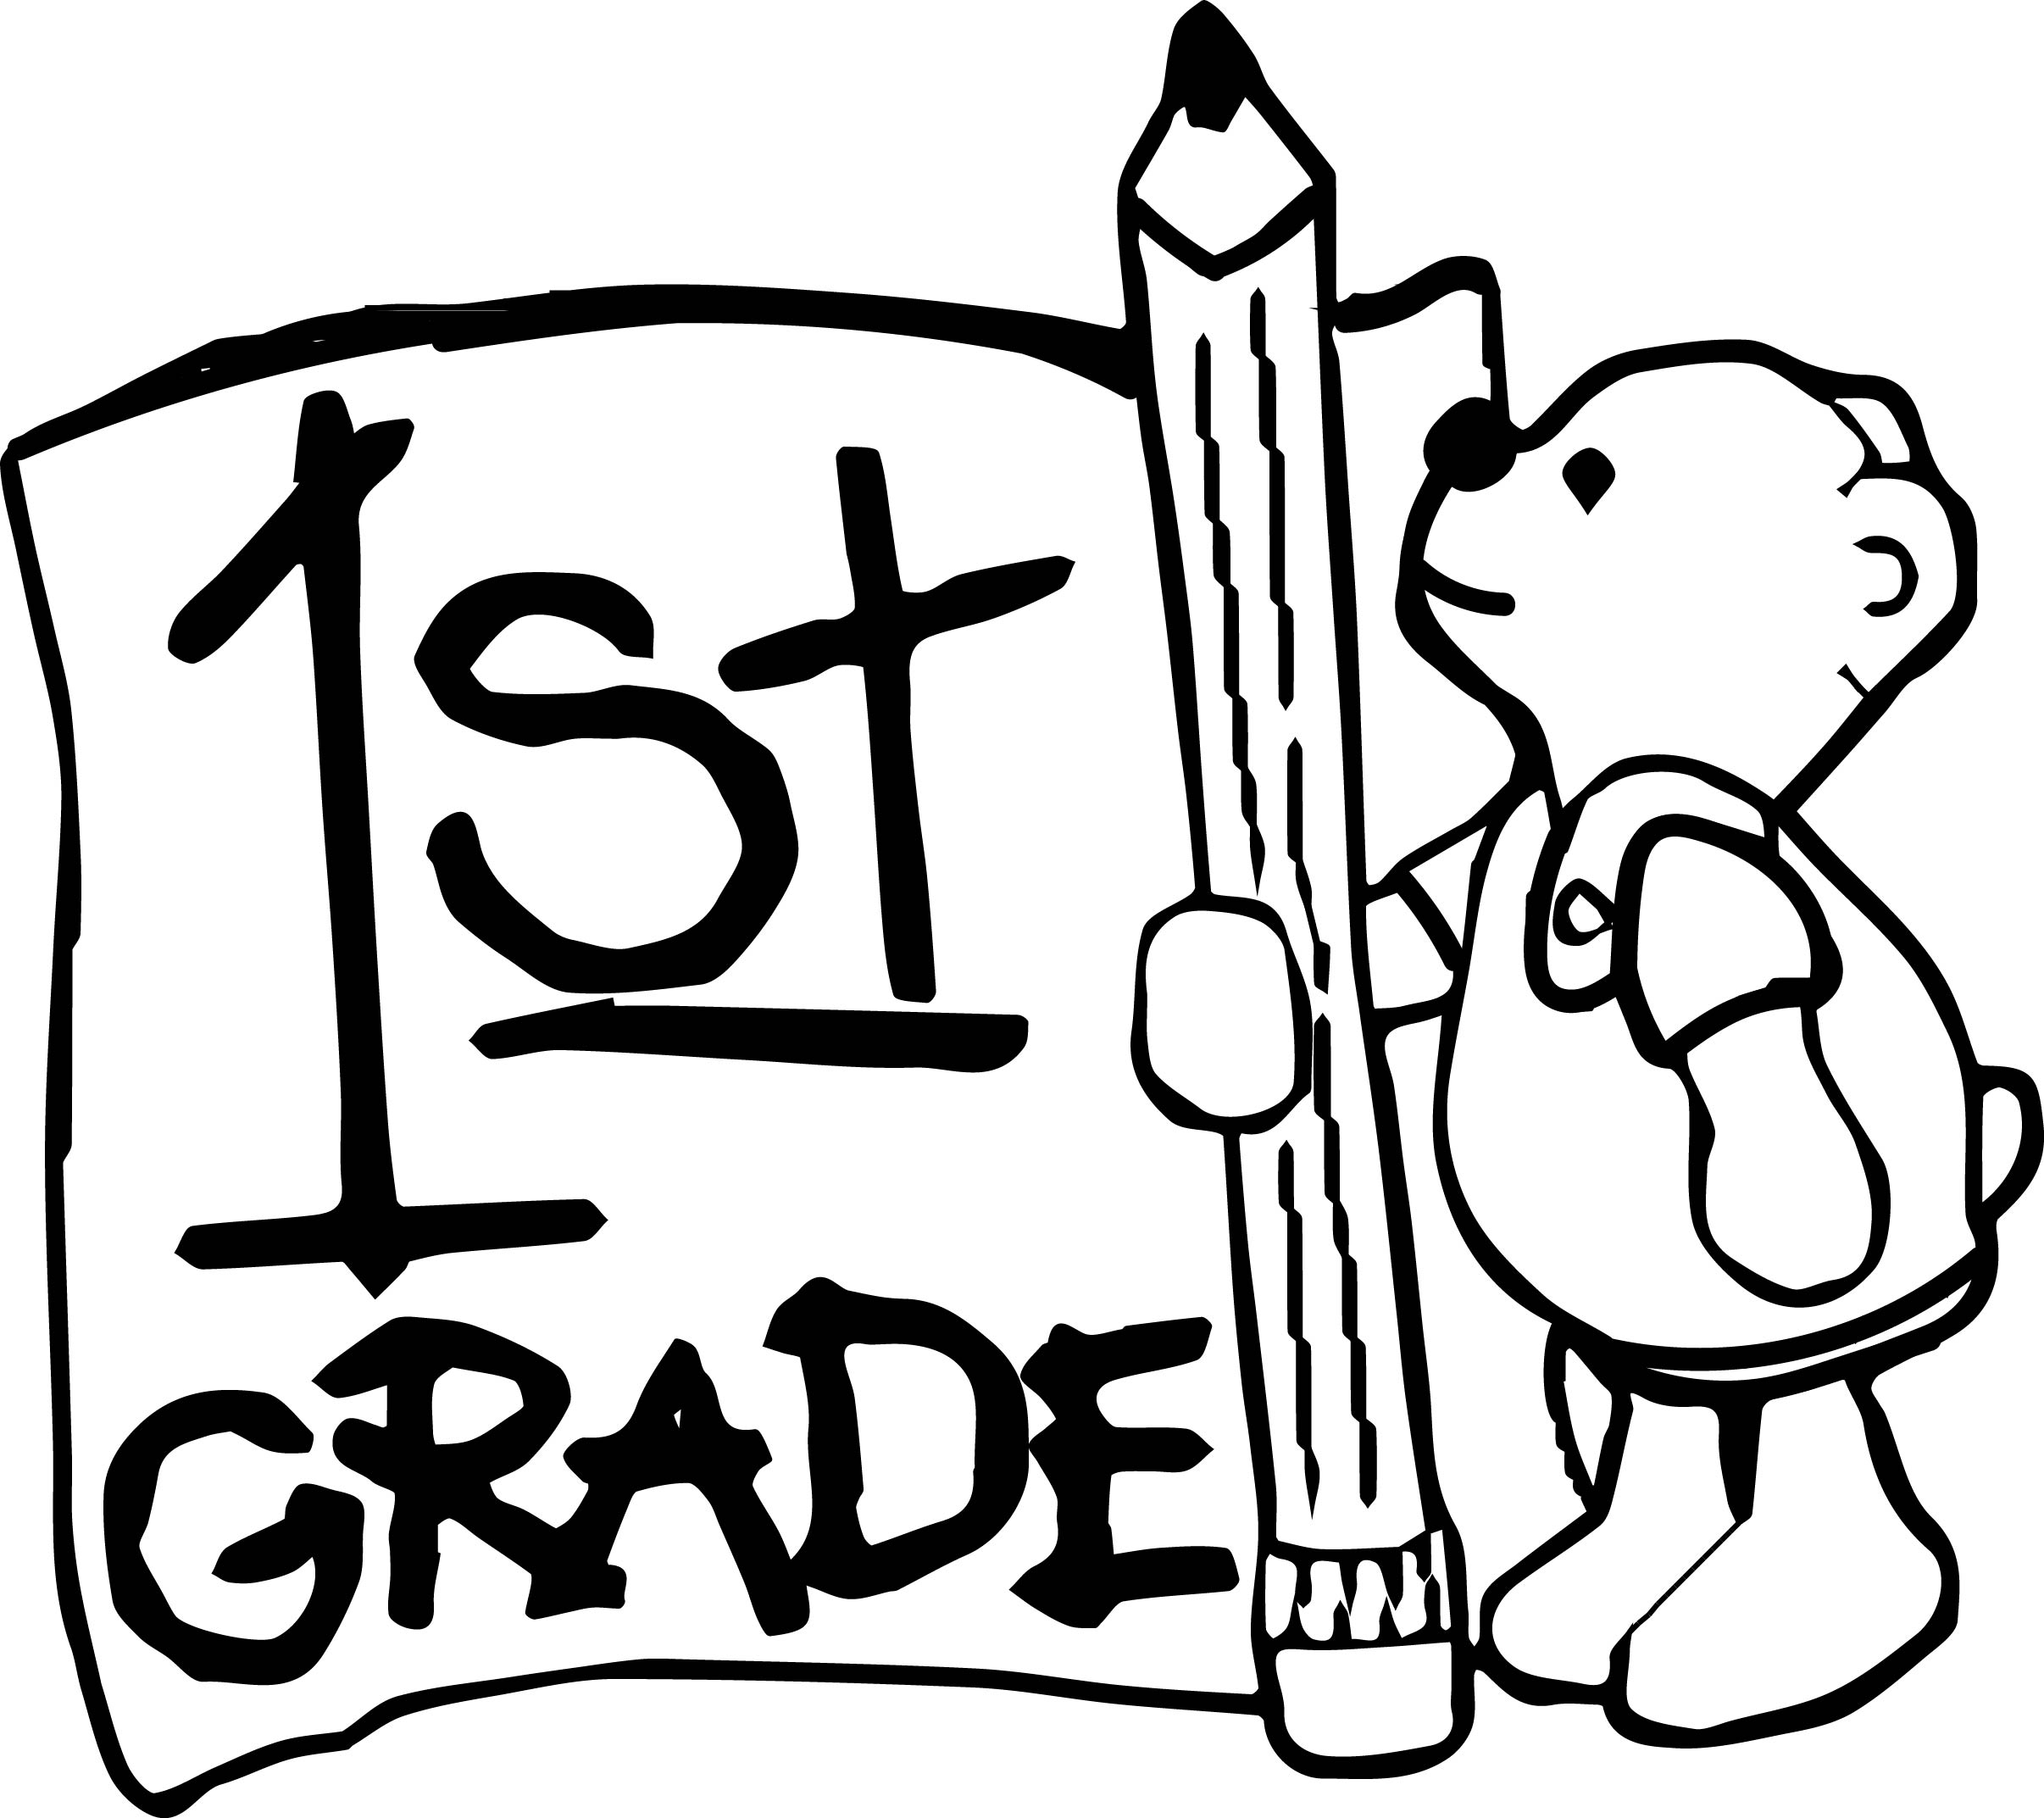 1st Grade Coloring Pages